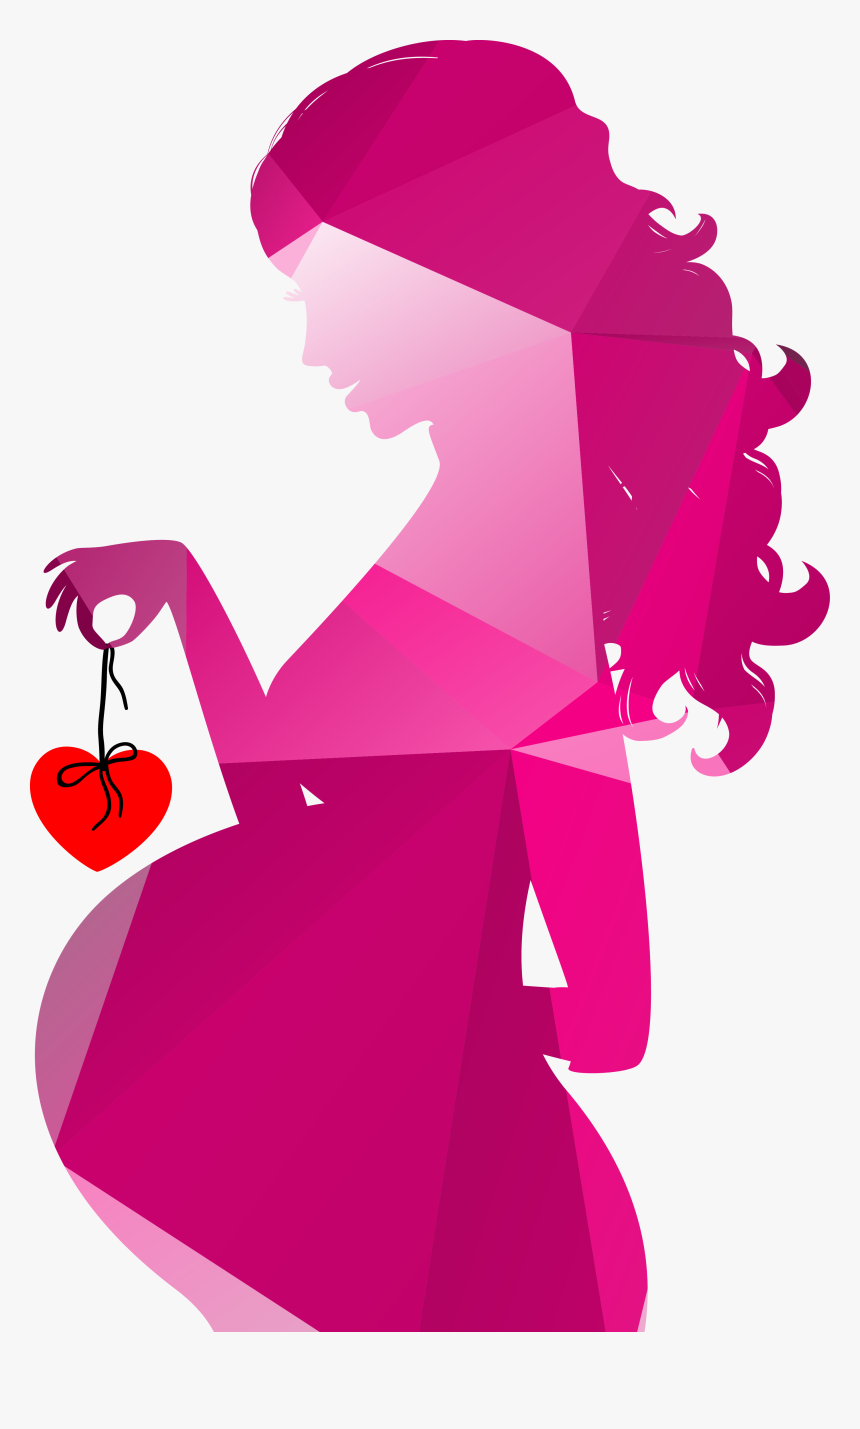 Silhouette Pregnancy Royalty Free Clip Art Transparent Pregnant Woman Silhouette Hd Png Download Kindpng